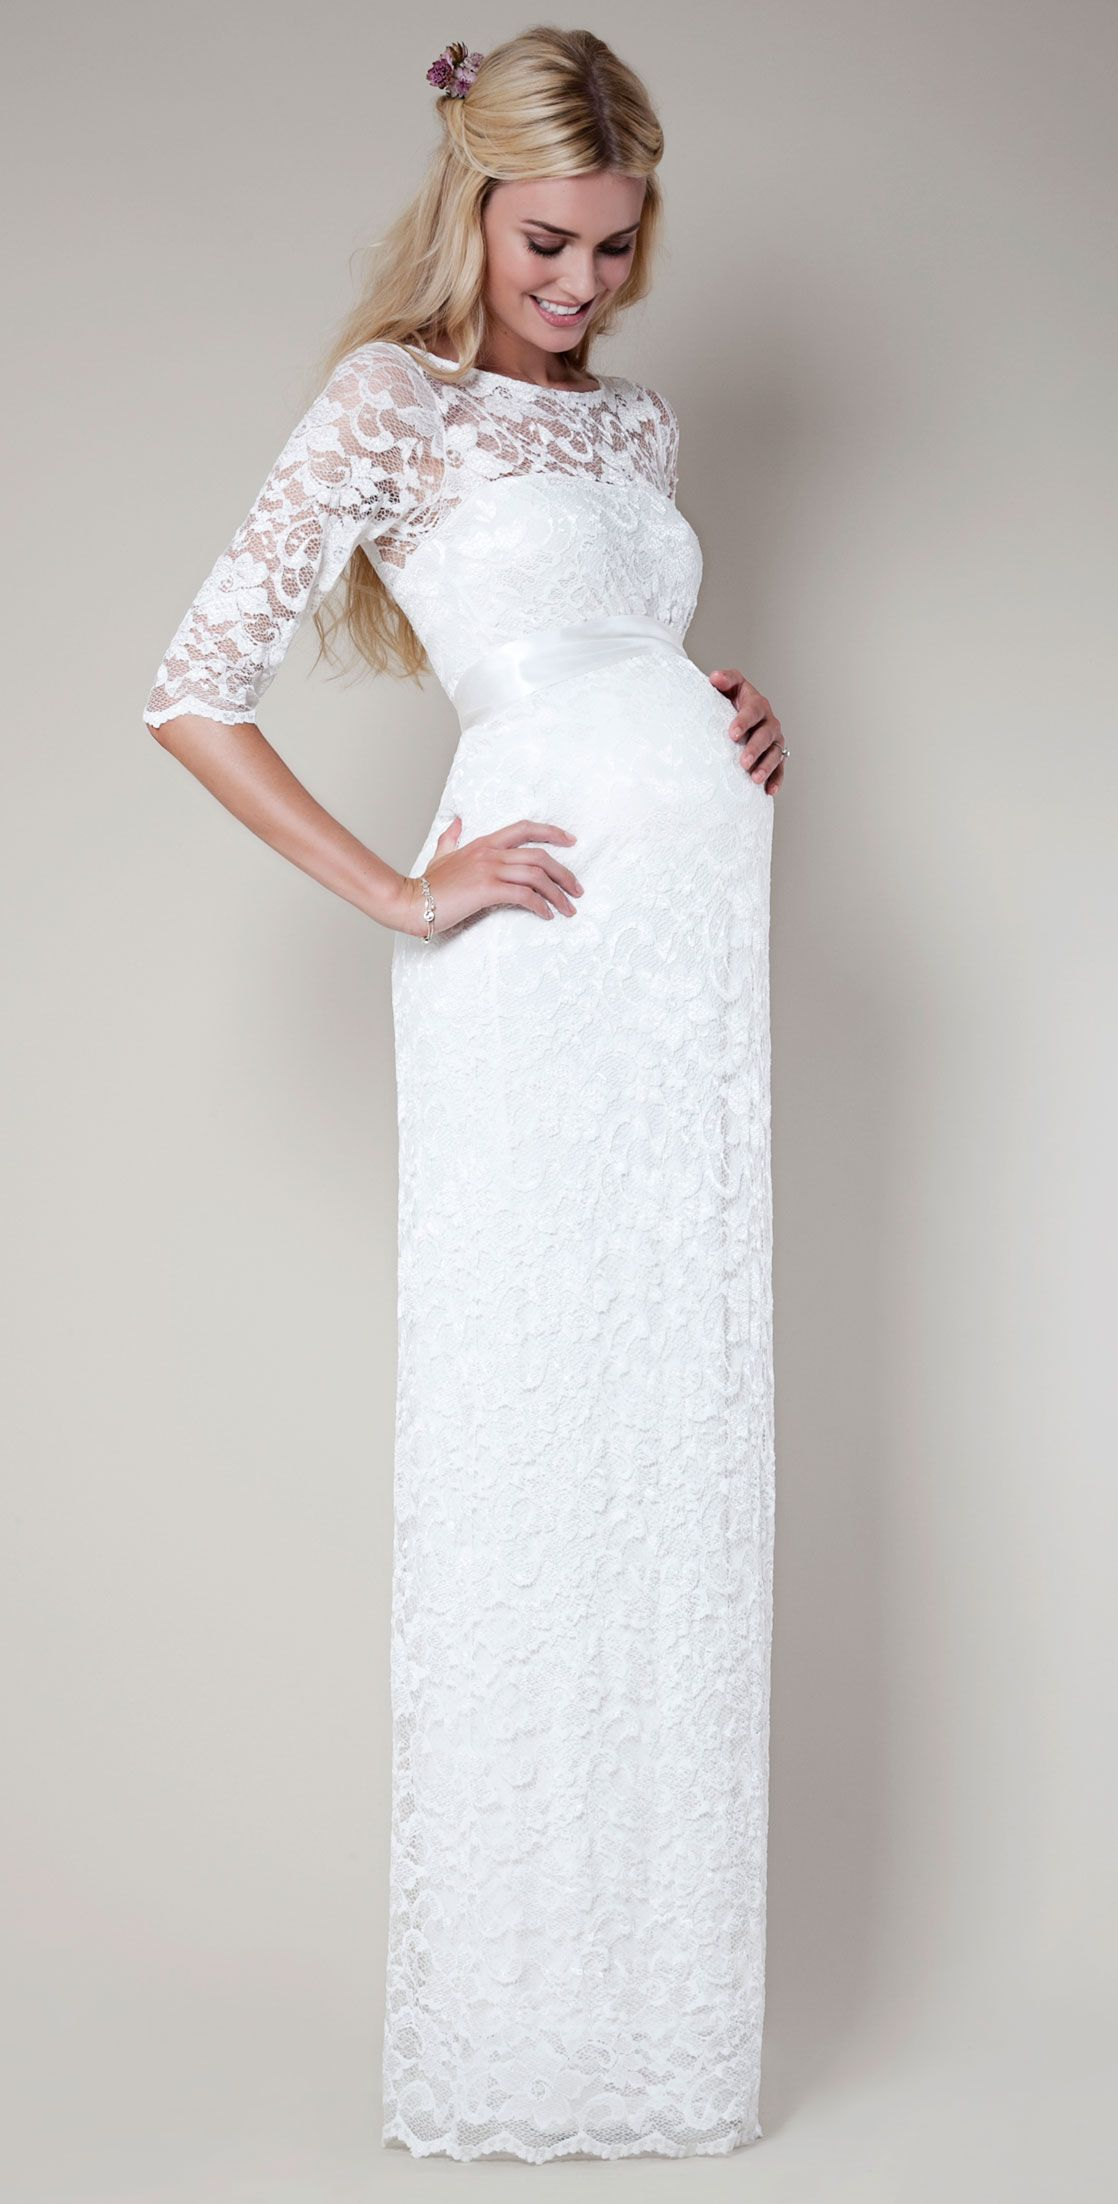 Tiffany roses amelia dress 380 is a modern classic with lovely amelia lace maternity dress long ivory maternity wedding dresses evening wear and party clothes by tiffany rose ombrellifo Gallery